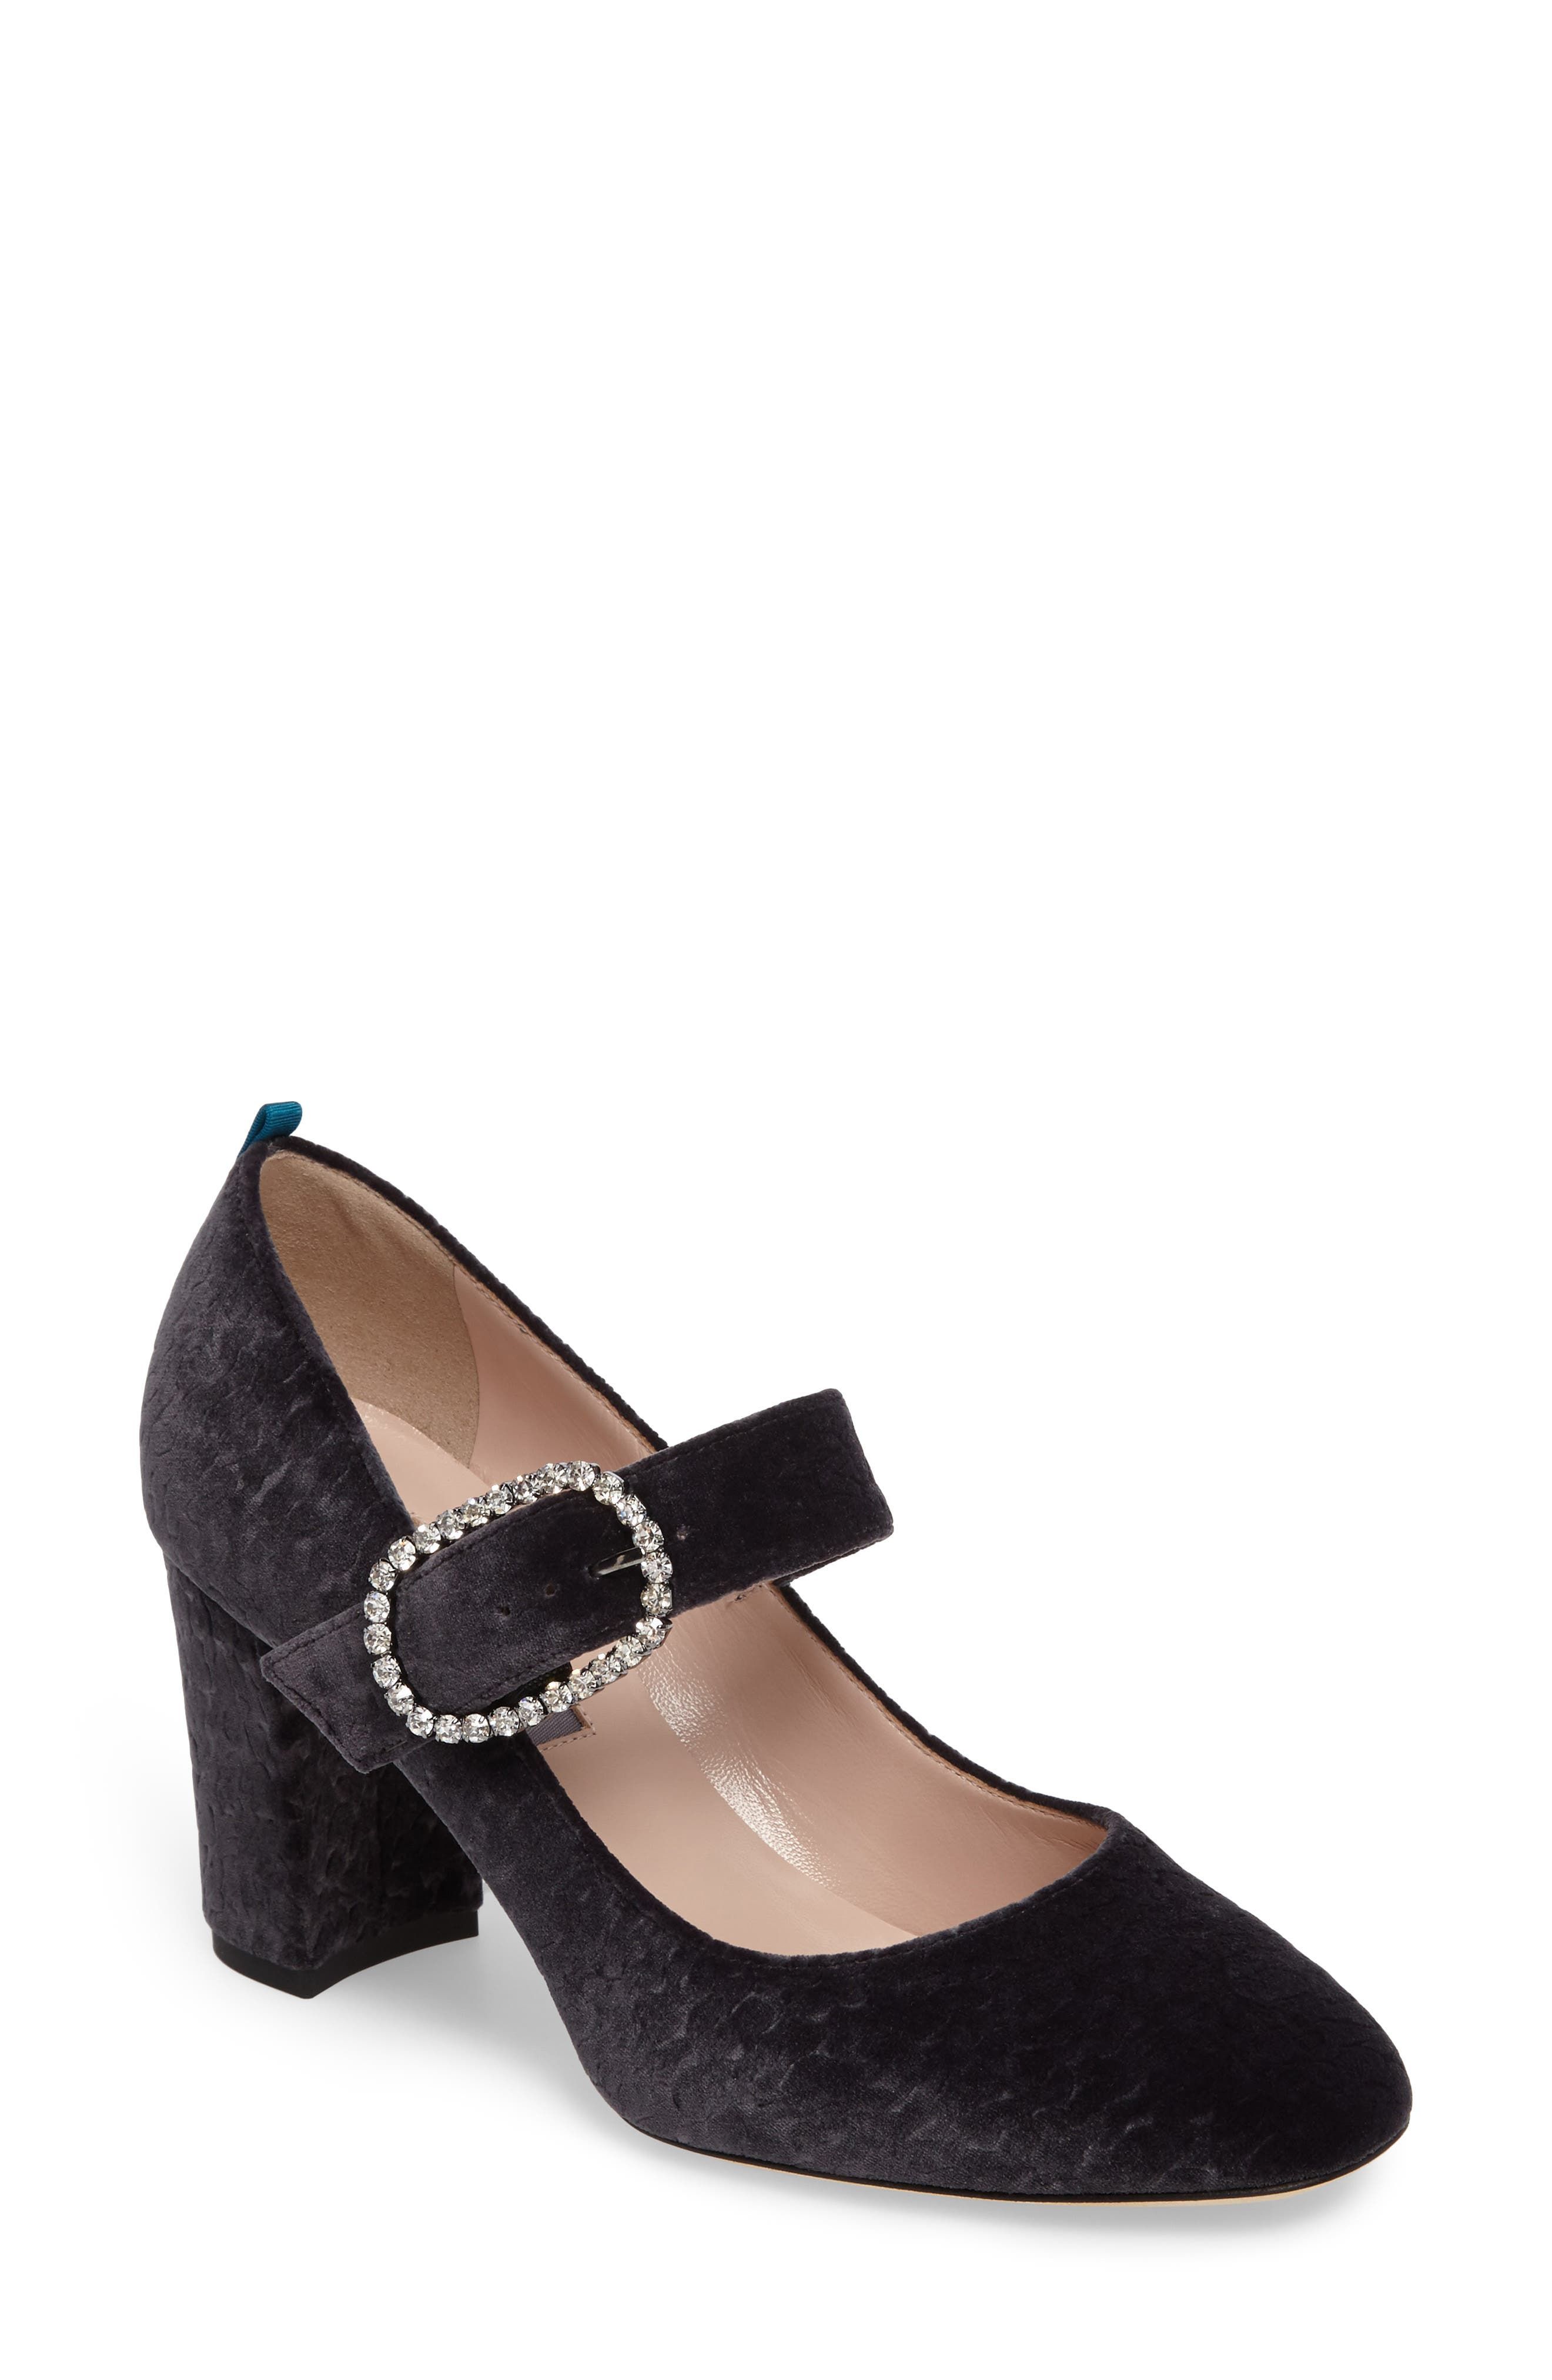 SJP by Sarah Jessica Parker Austen Mary Jane Pump (Women)